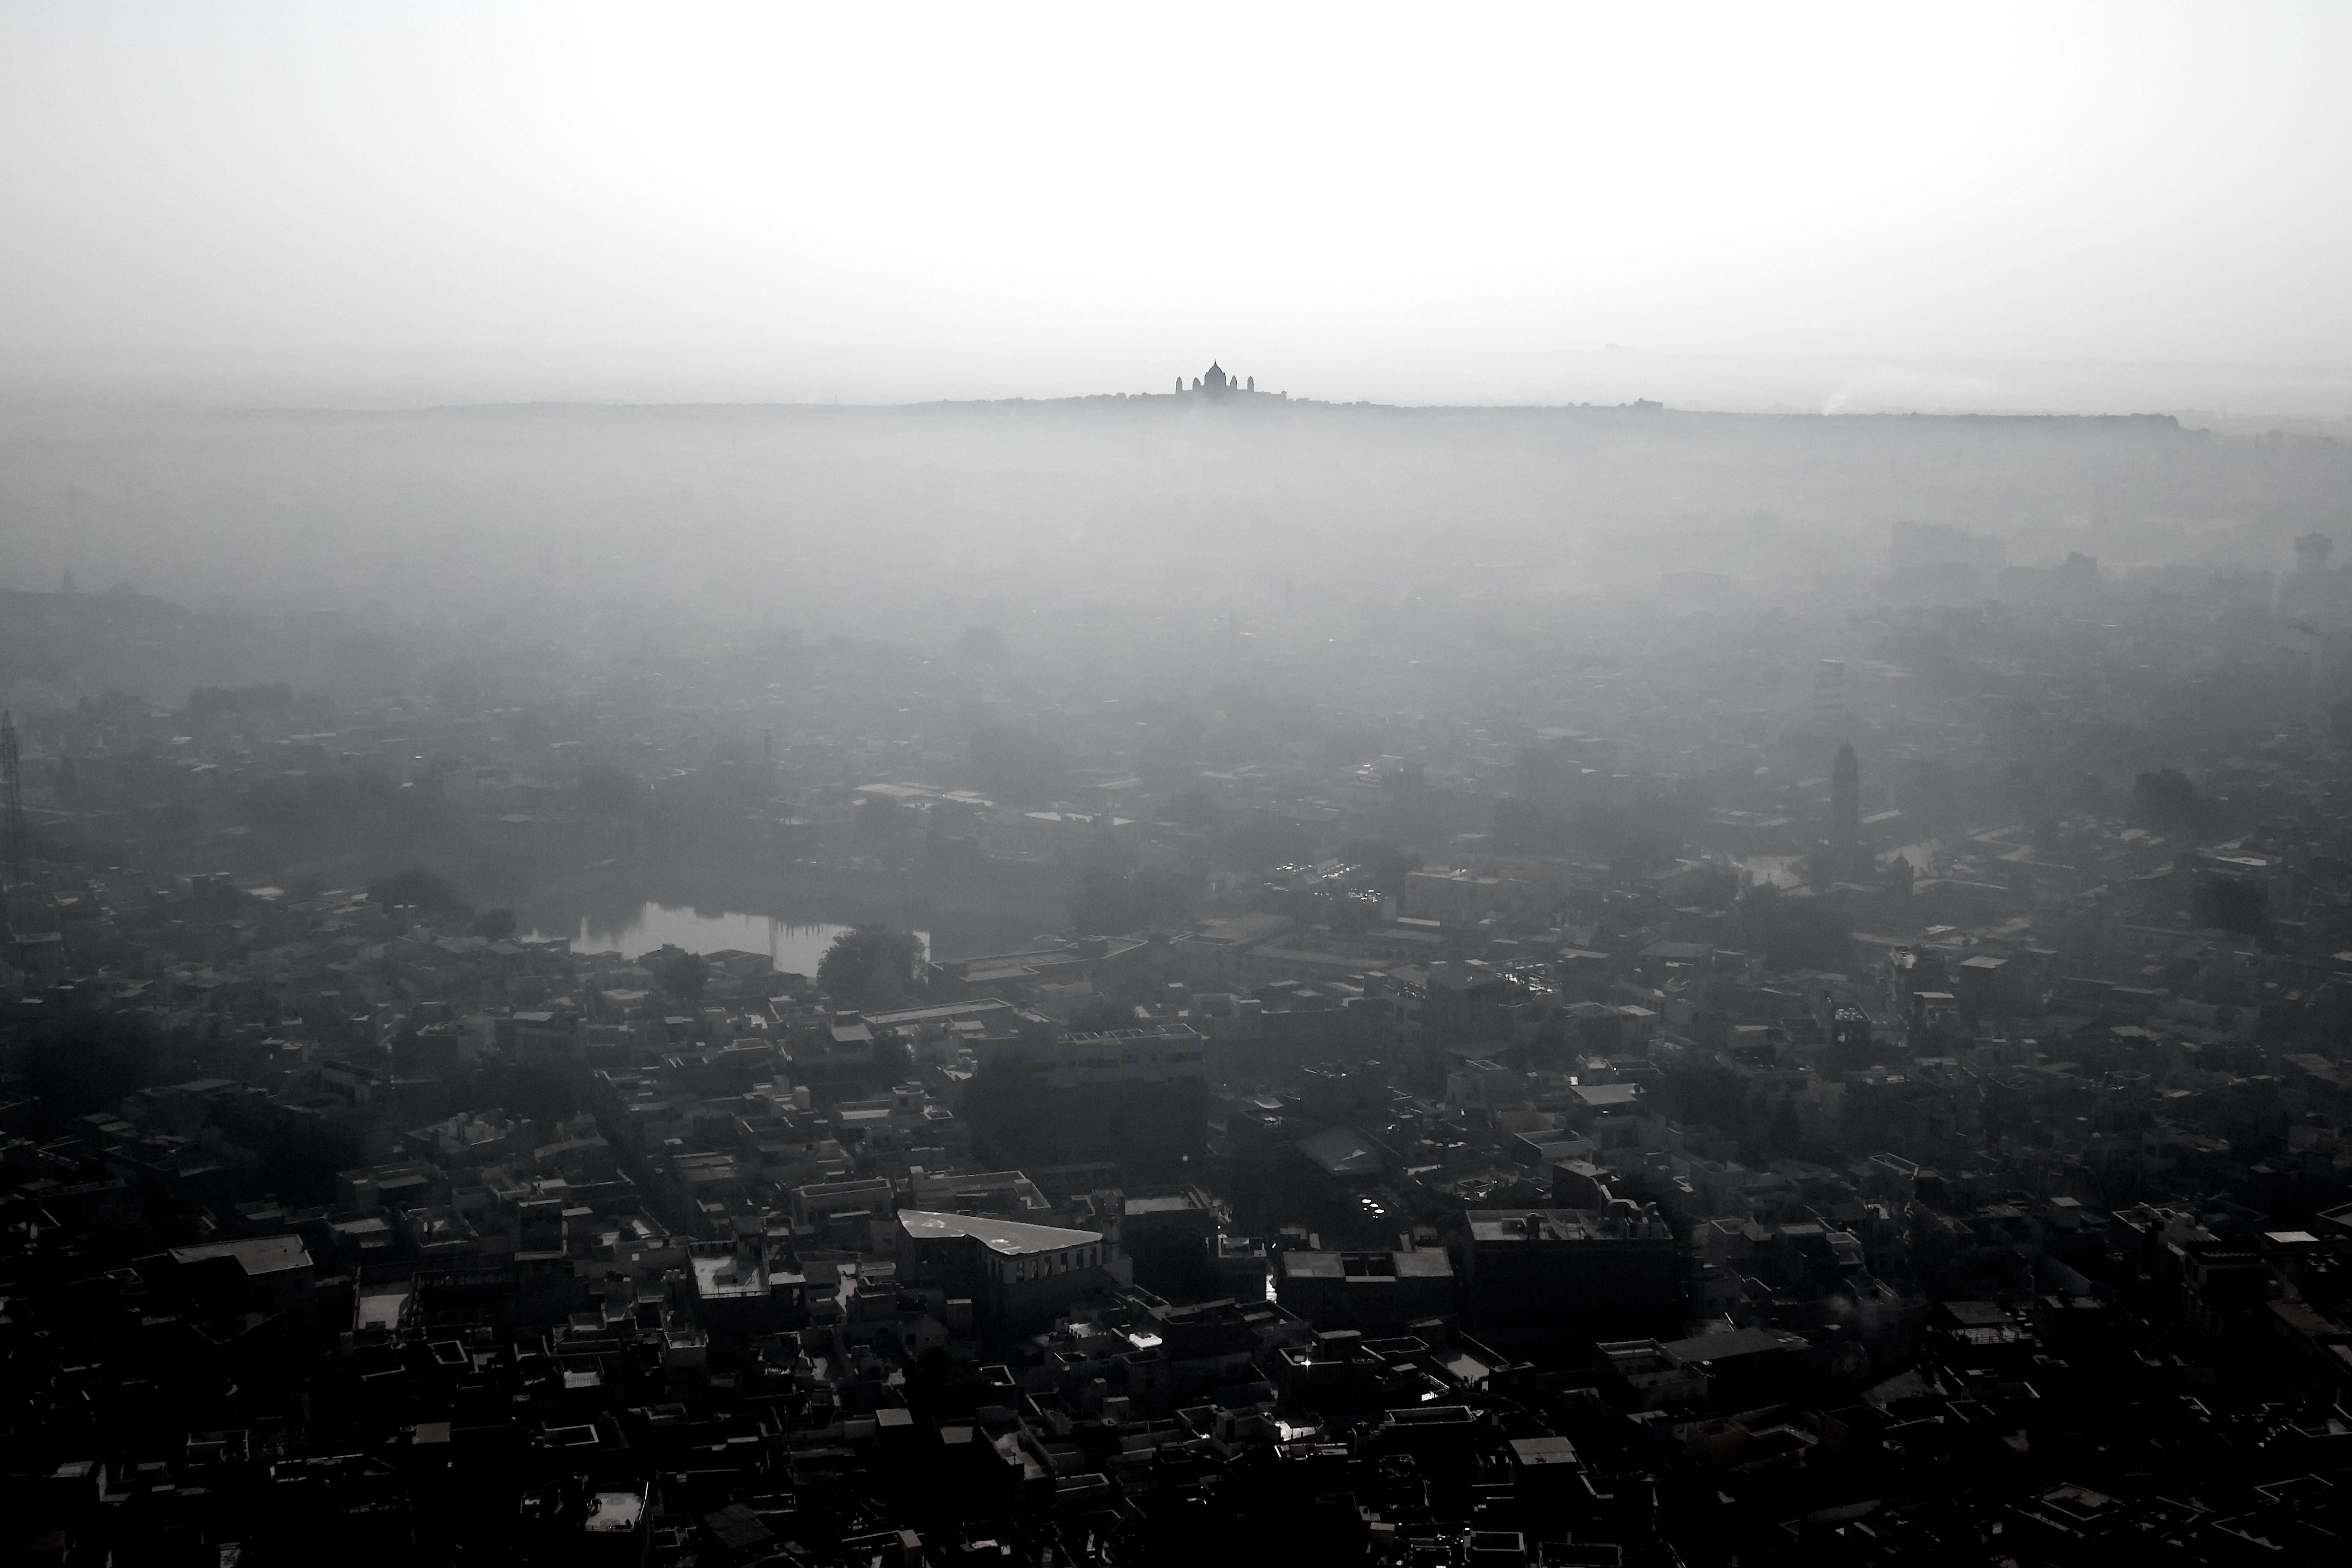 Black and white shot of city with haze and Taj Mahal on the horizon